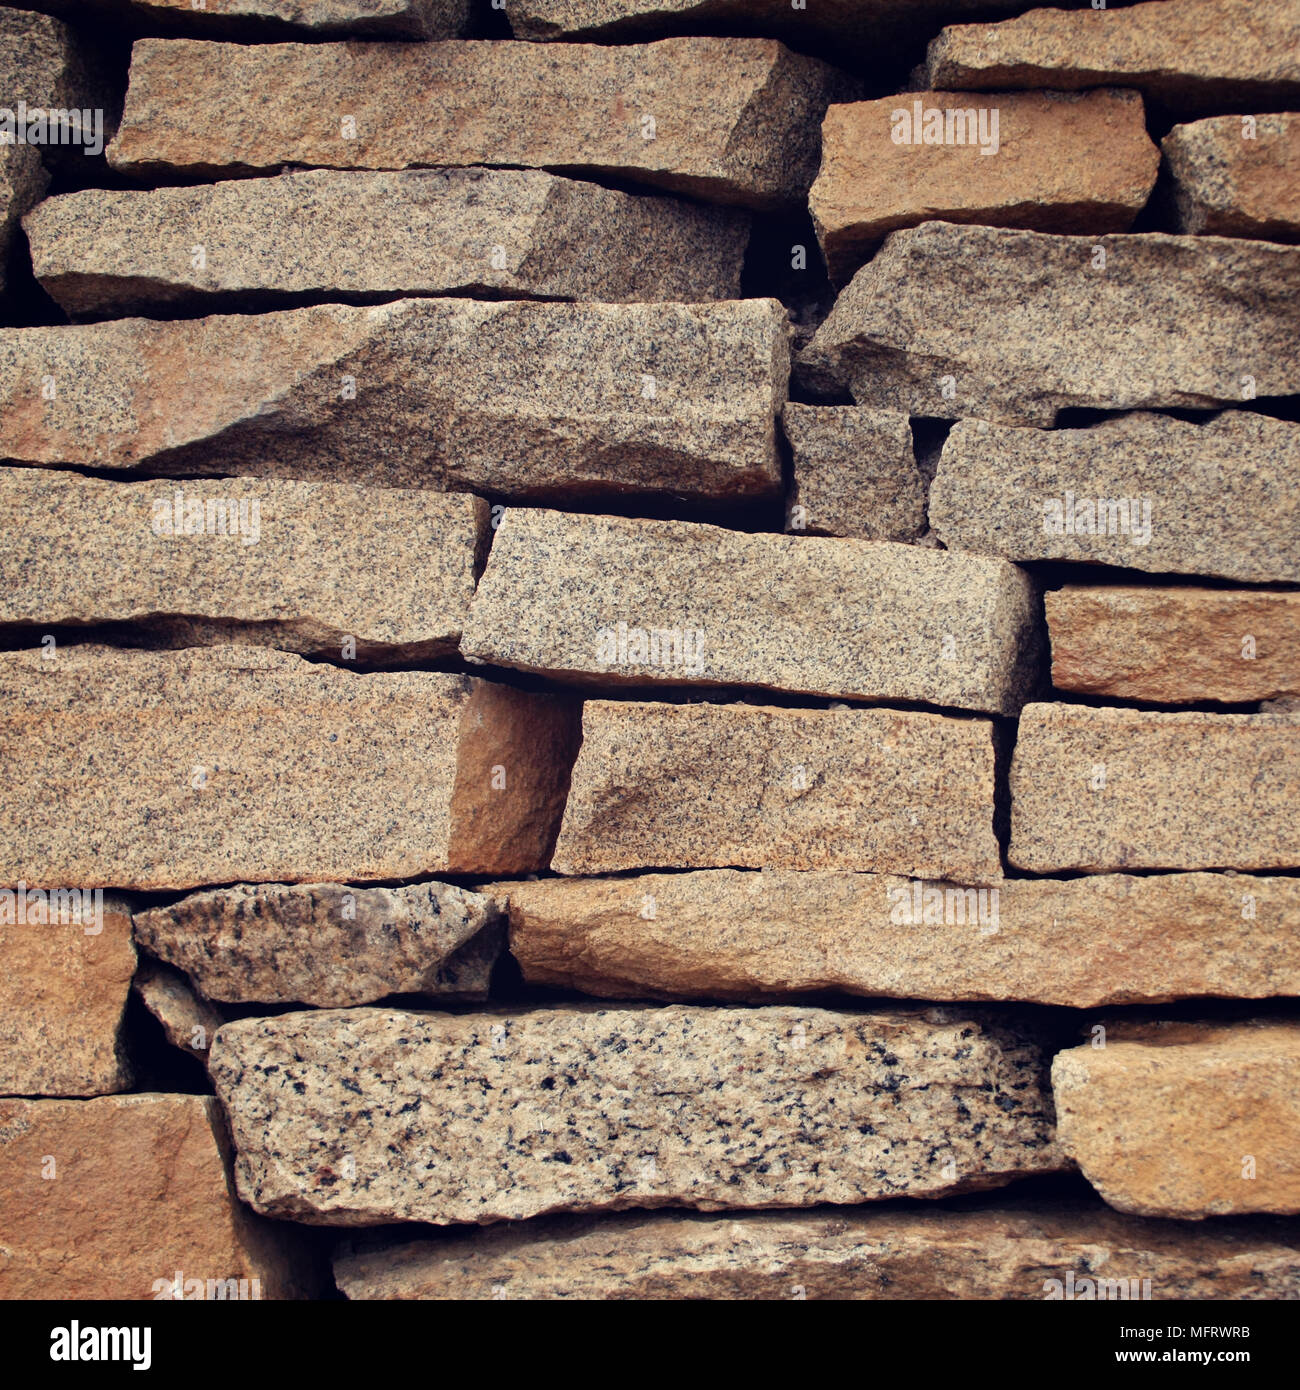 Pile of flat decorative stones. Close up. Grey colored stony texture. Building wall closeup. Abstract stony background. - Stock Image